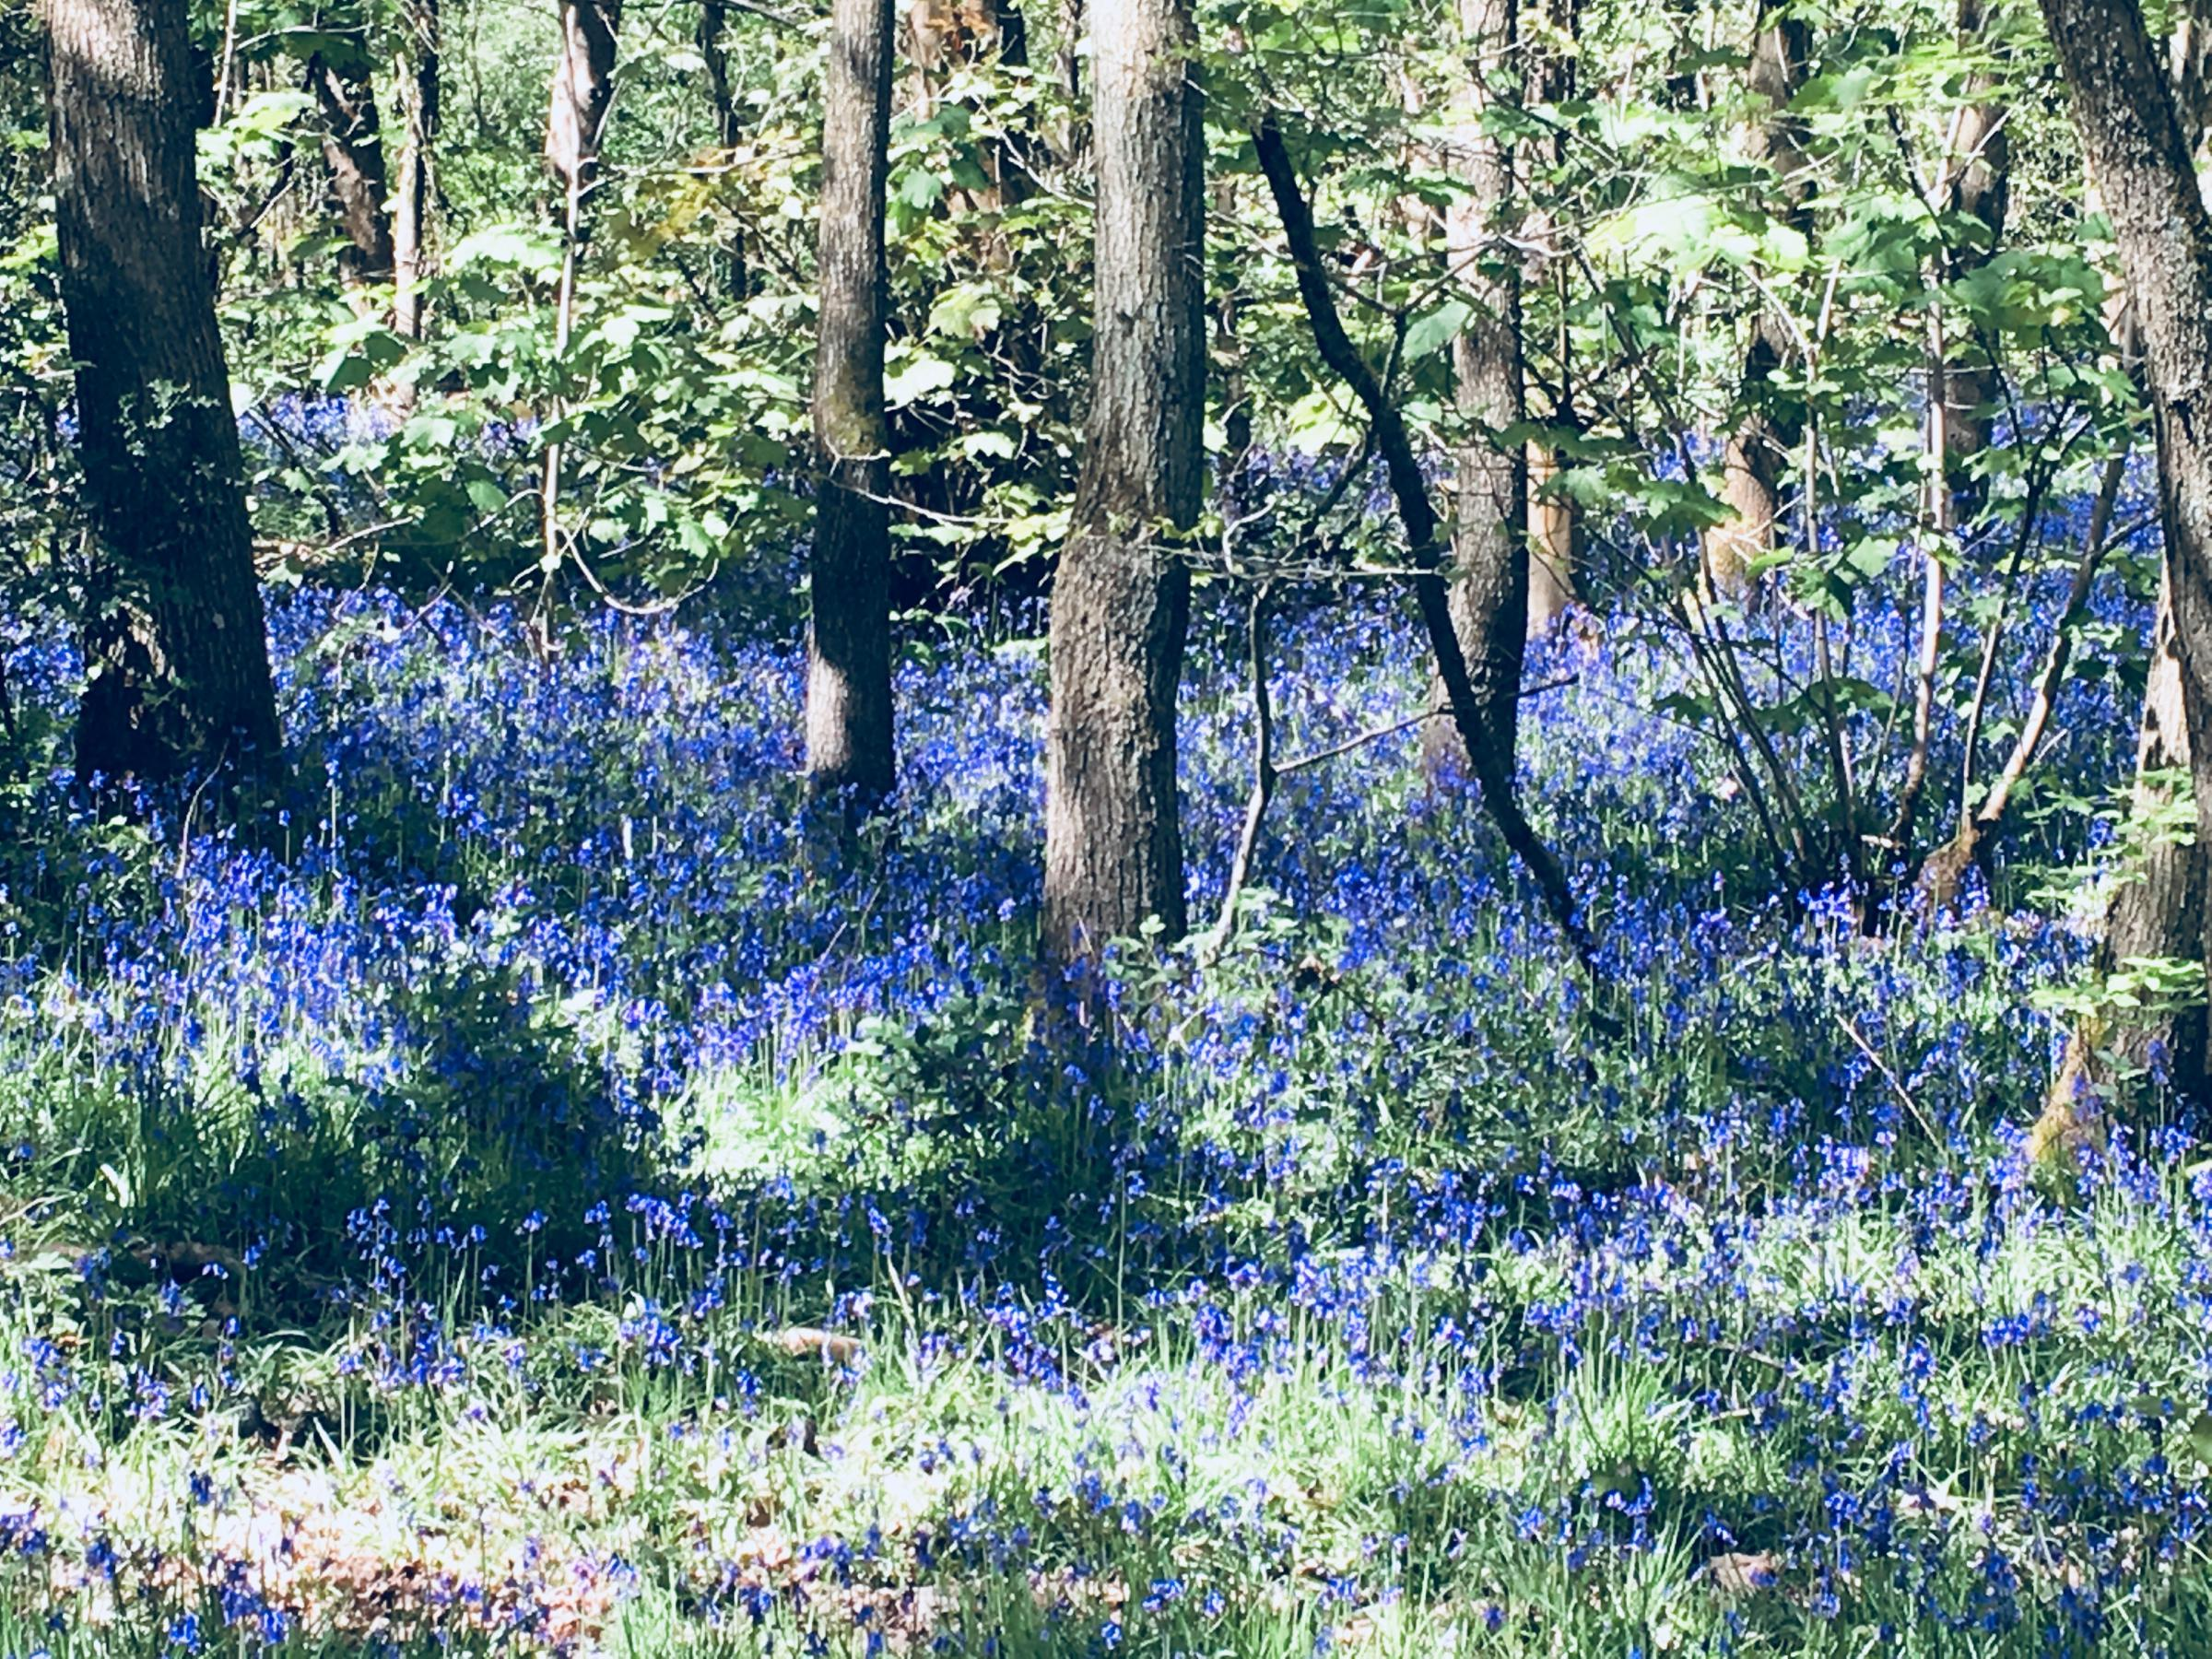 Bluebells in bloom in the Saltwells Local Nature Reserve, pictured in May 2018.